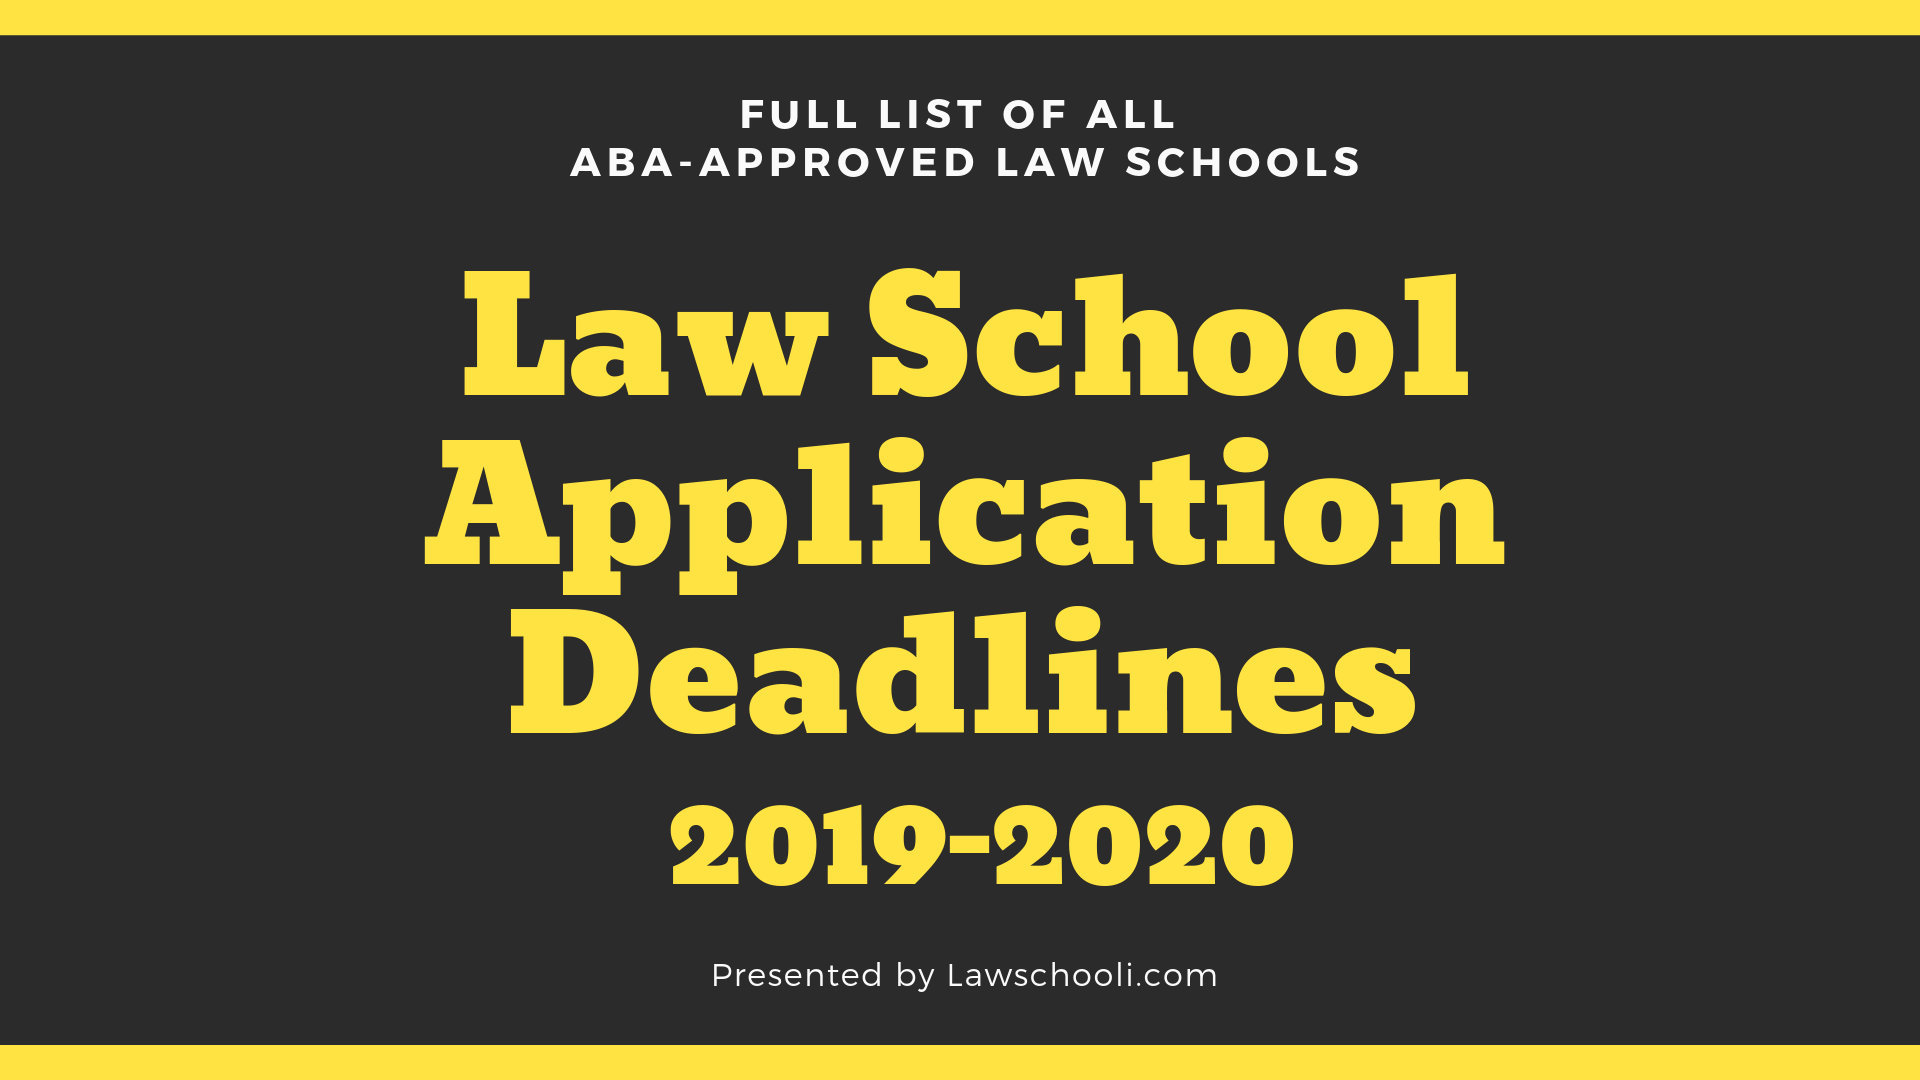 Law Schools In North Carolina >> Law School Application Deadlines 2019 2020 Lawschooli